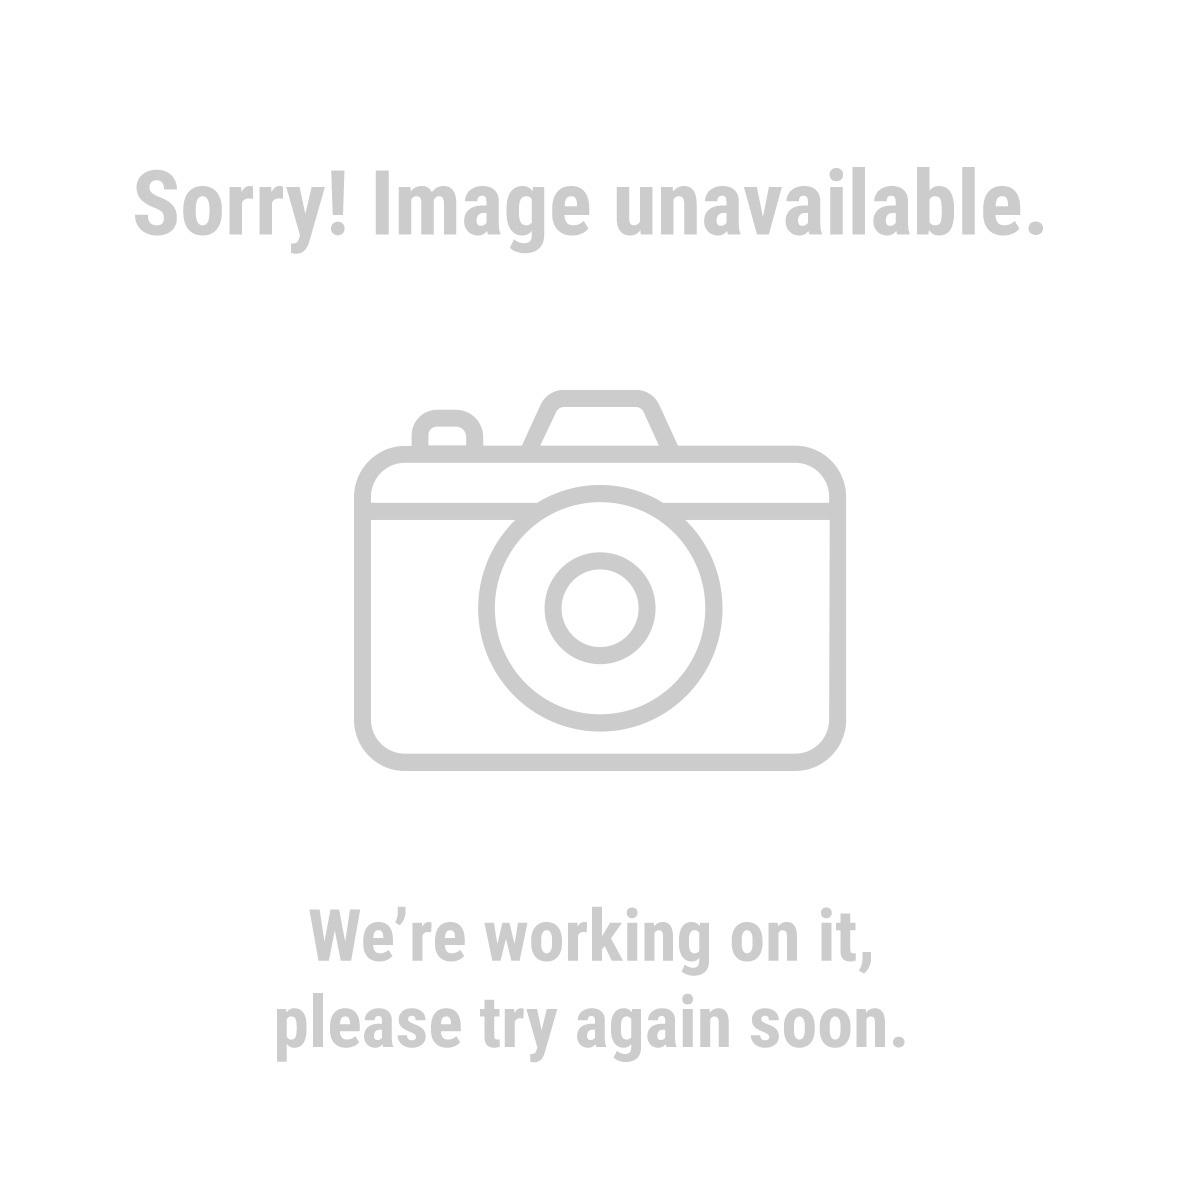 8 Quot Bench Grinder With Gooseneck Lamp